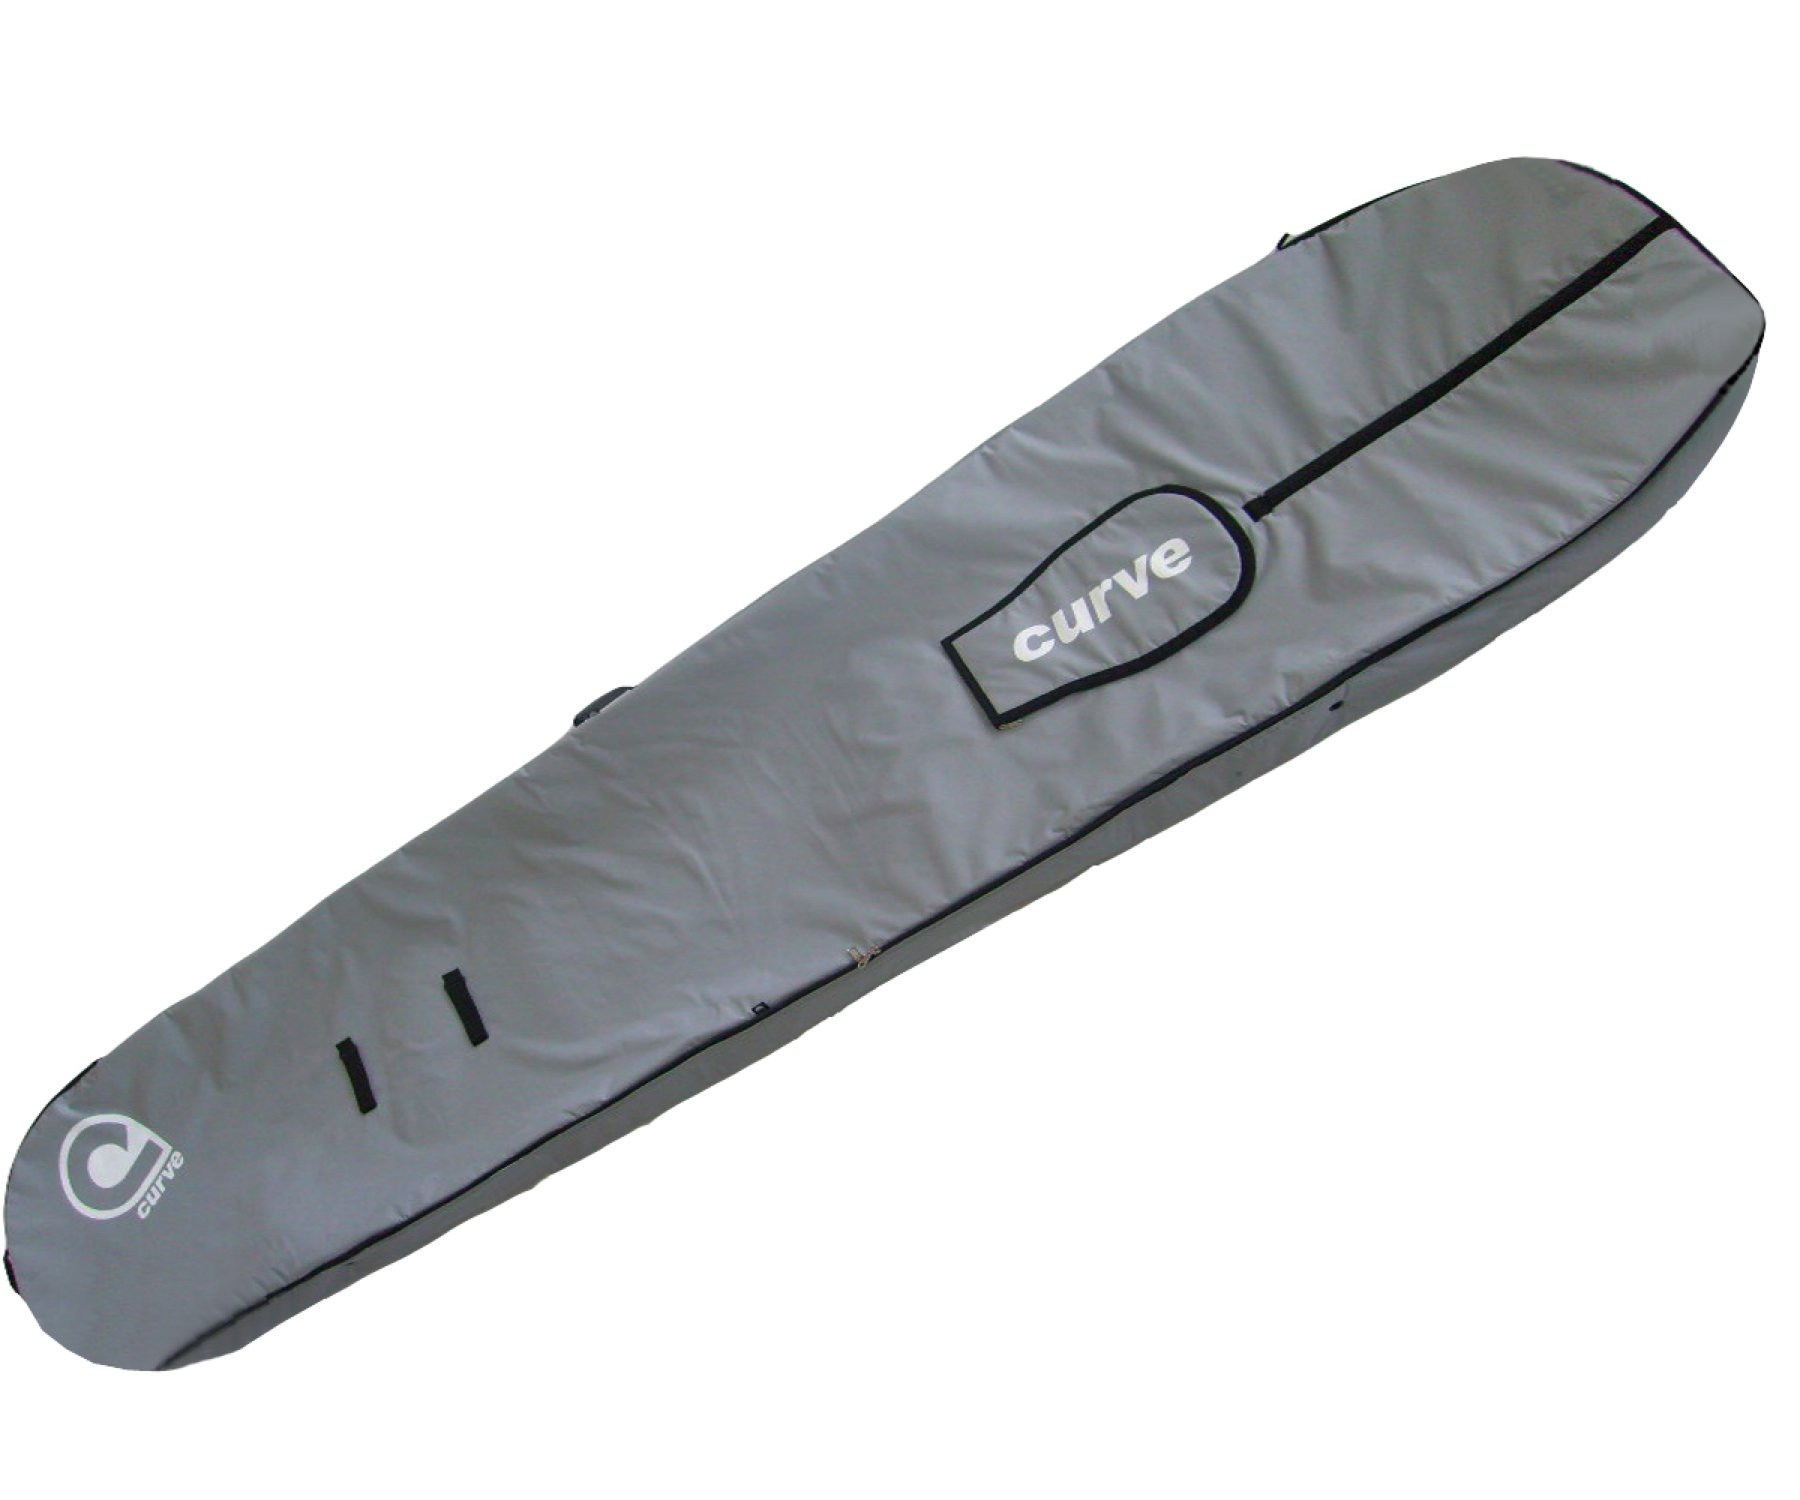 Curve SUP Stand Up Paddleboard Board Bag Heavyweight 9'6 to 12'4 (11'6 Travelbag) by Curve